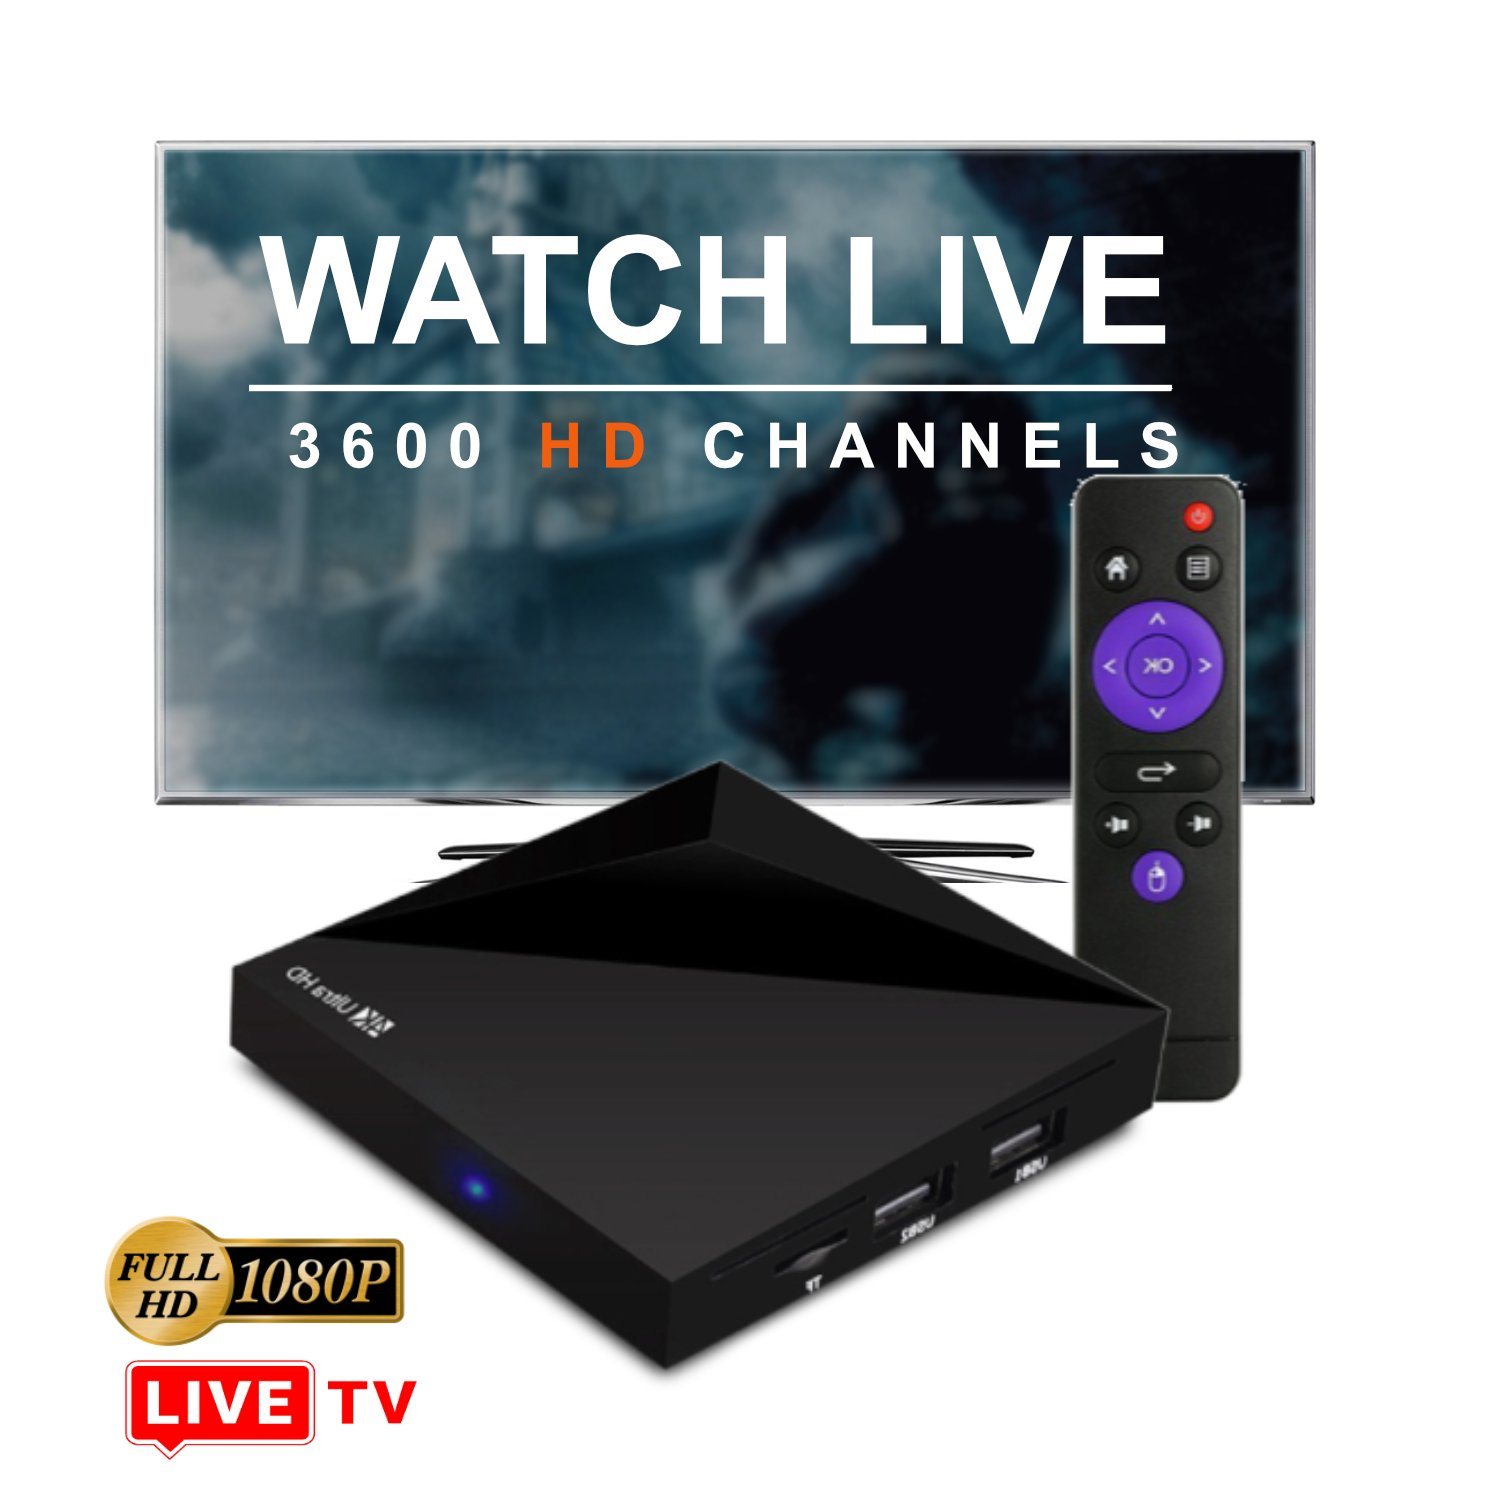 MS IPTV Receiver Loaded With 3000 Live TV Channels From All Around The World With Movie Library & VOD Apps - Stream in HD Quality LIVE TV & Video on Demand